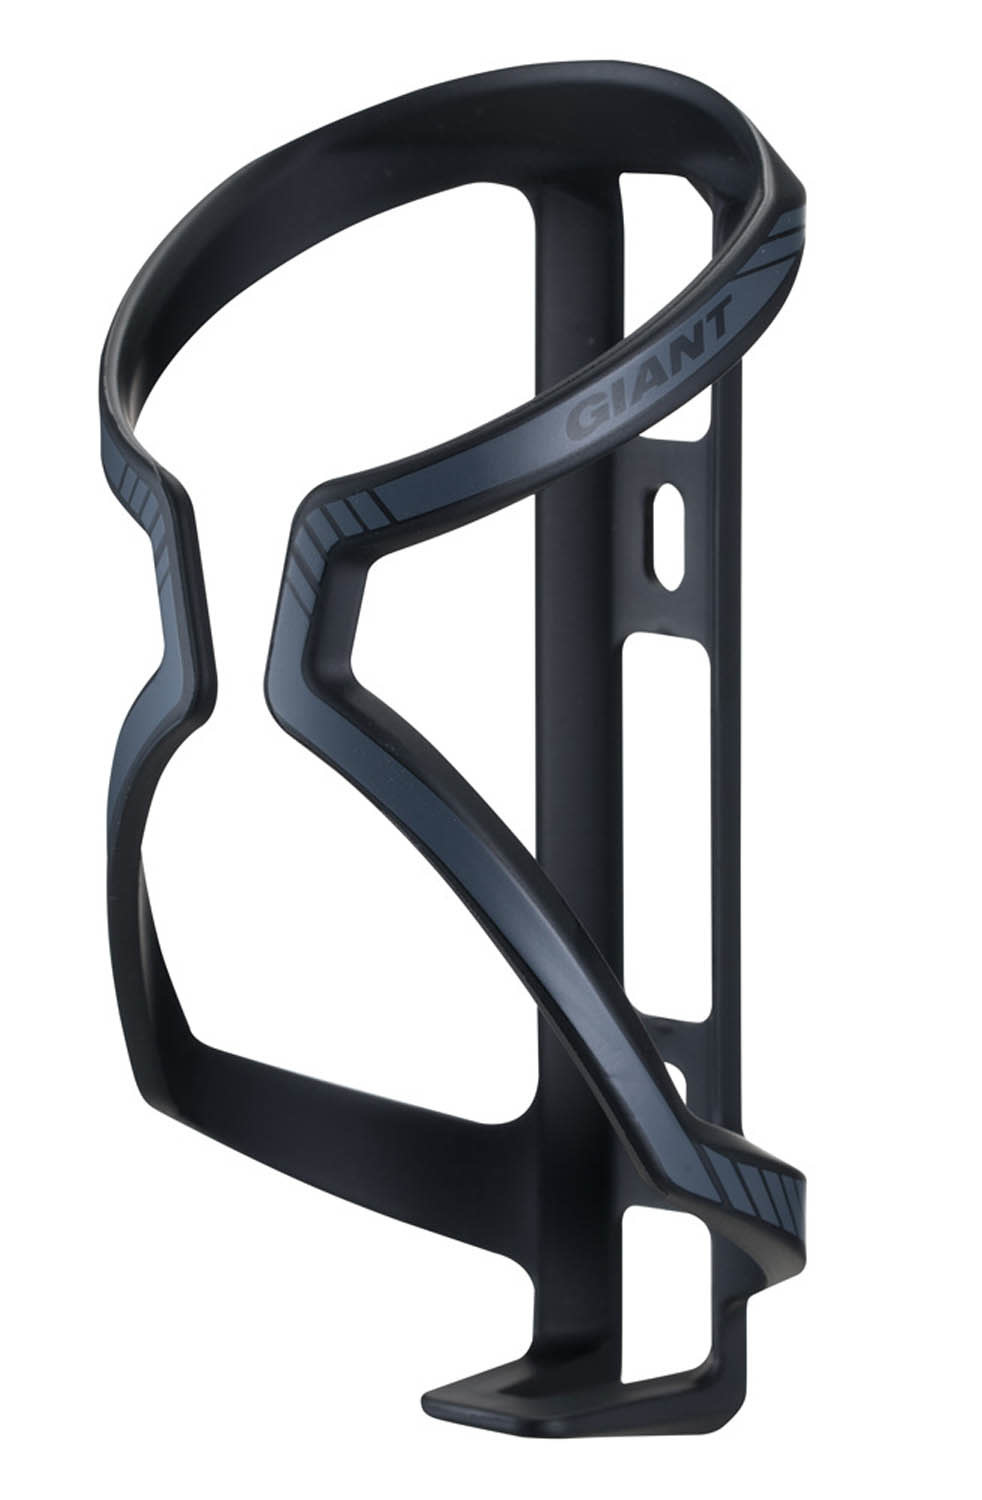 Giant Giant Airway Water Bottle Cage